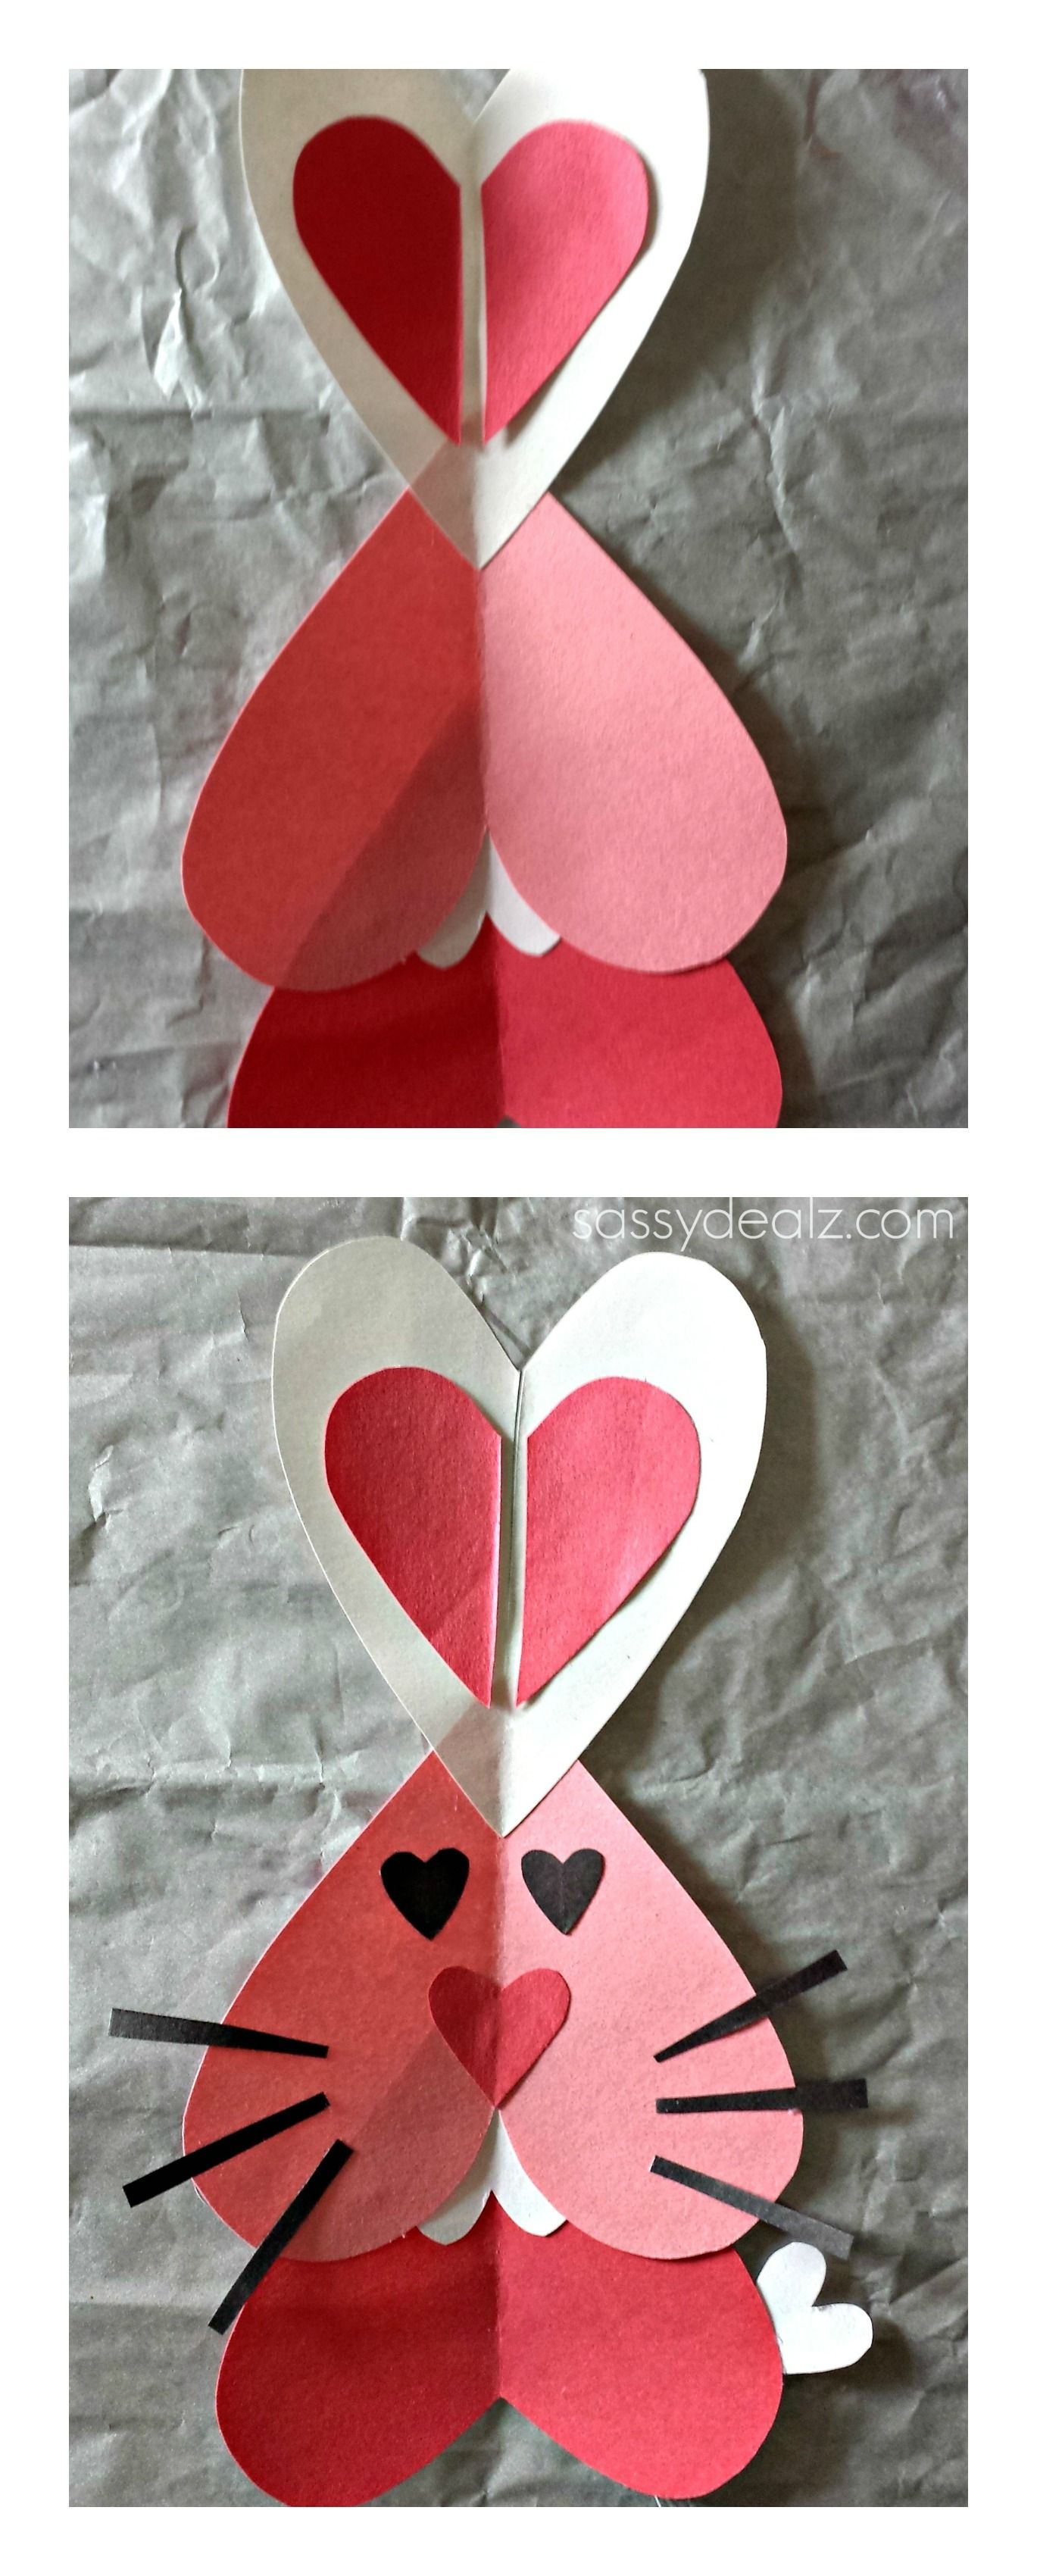 Heart Bunny Rabbit Craft For Kids {Valentine's Day Art Project} #Heart  shaped animal